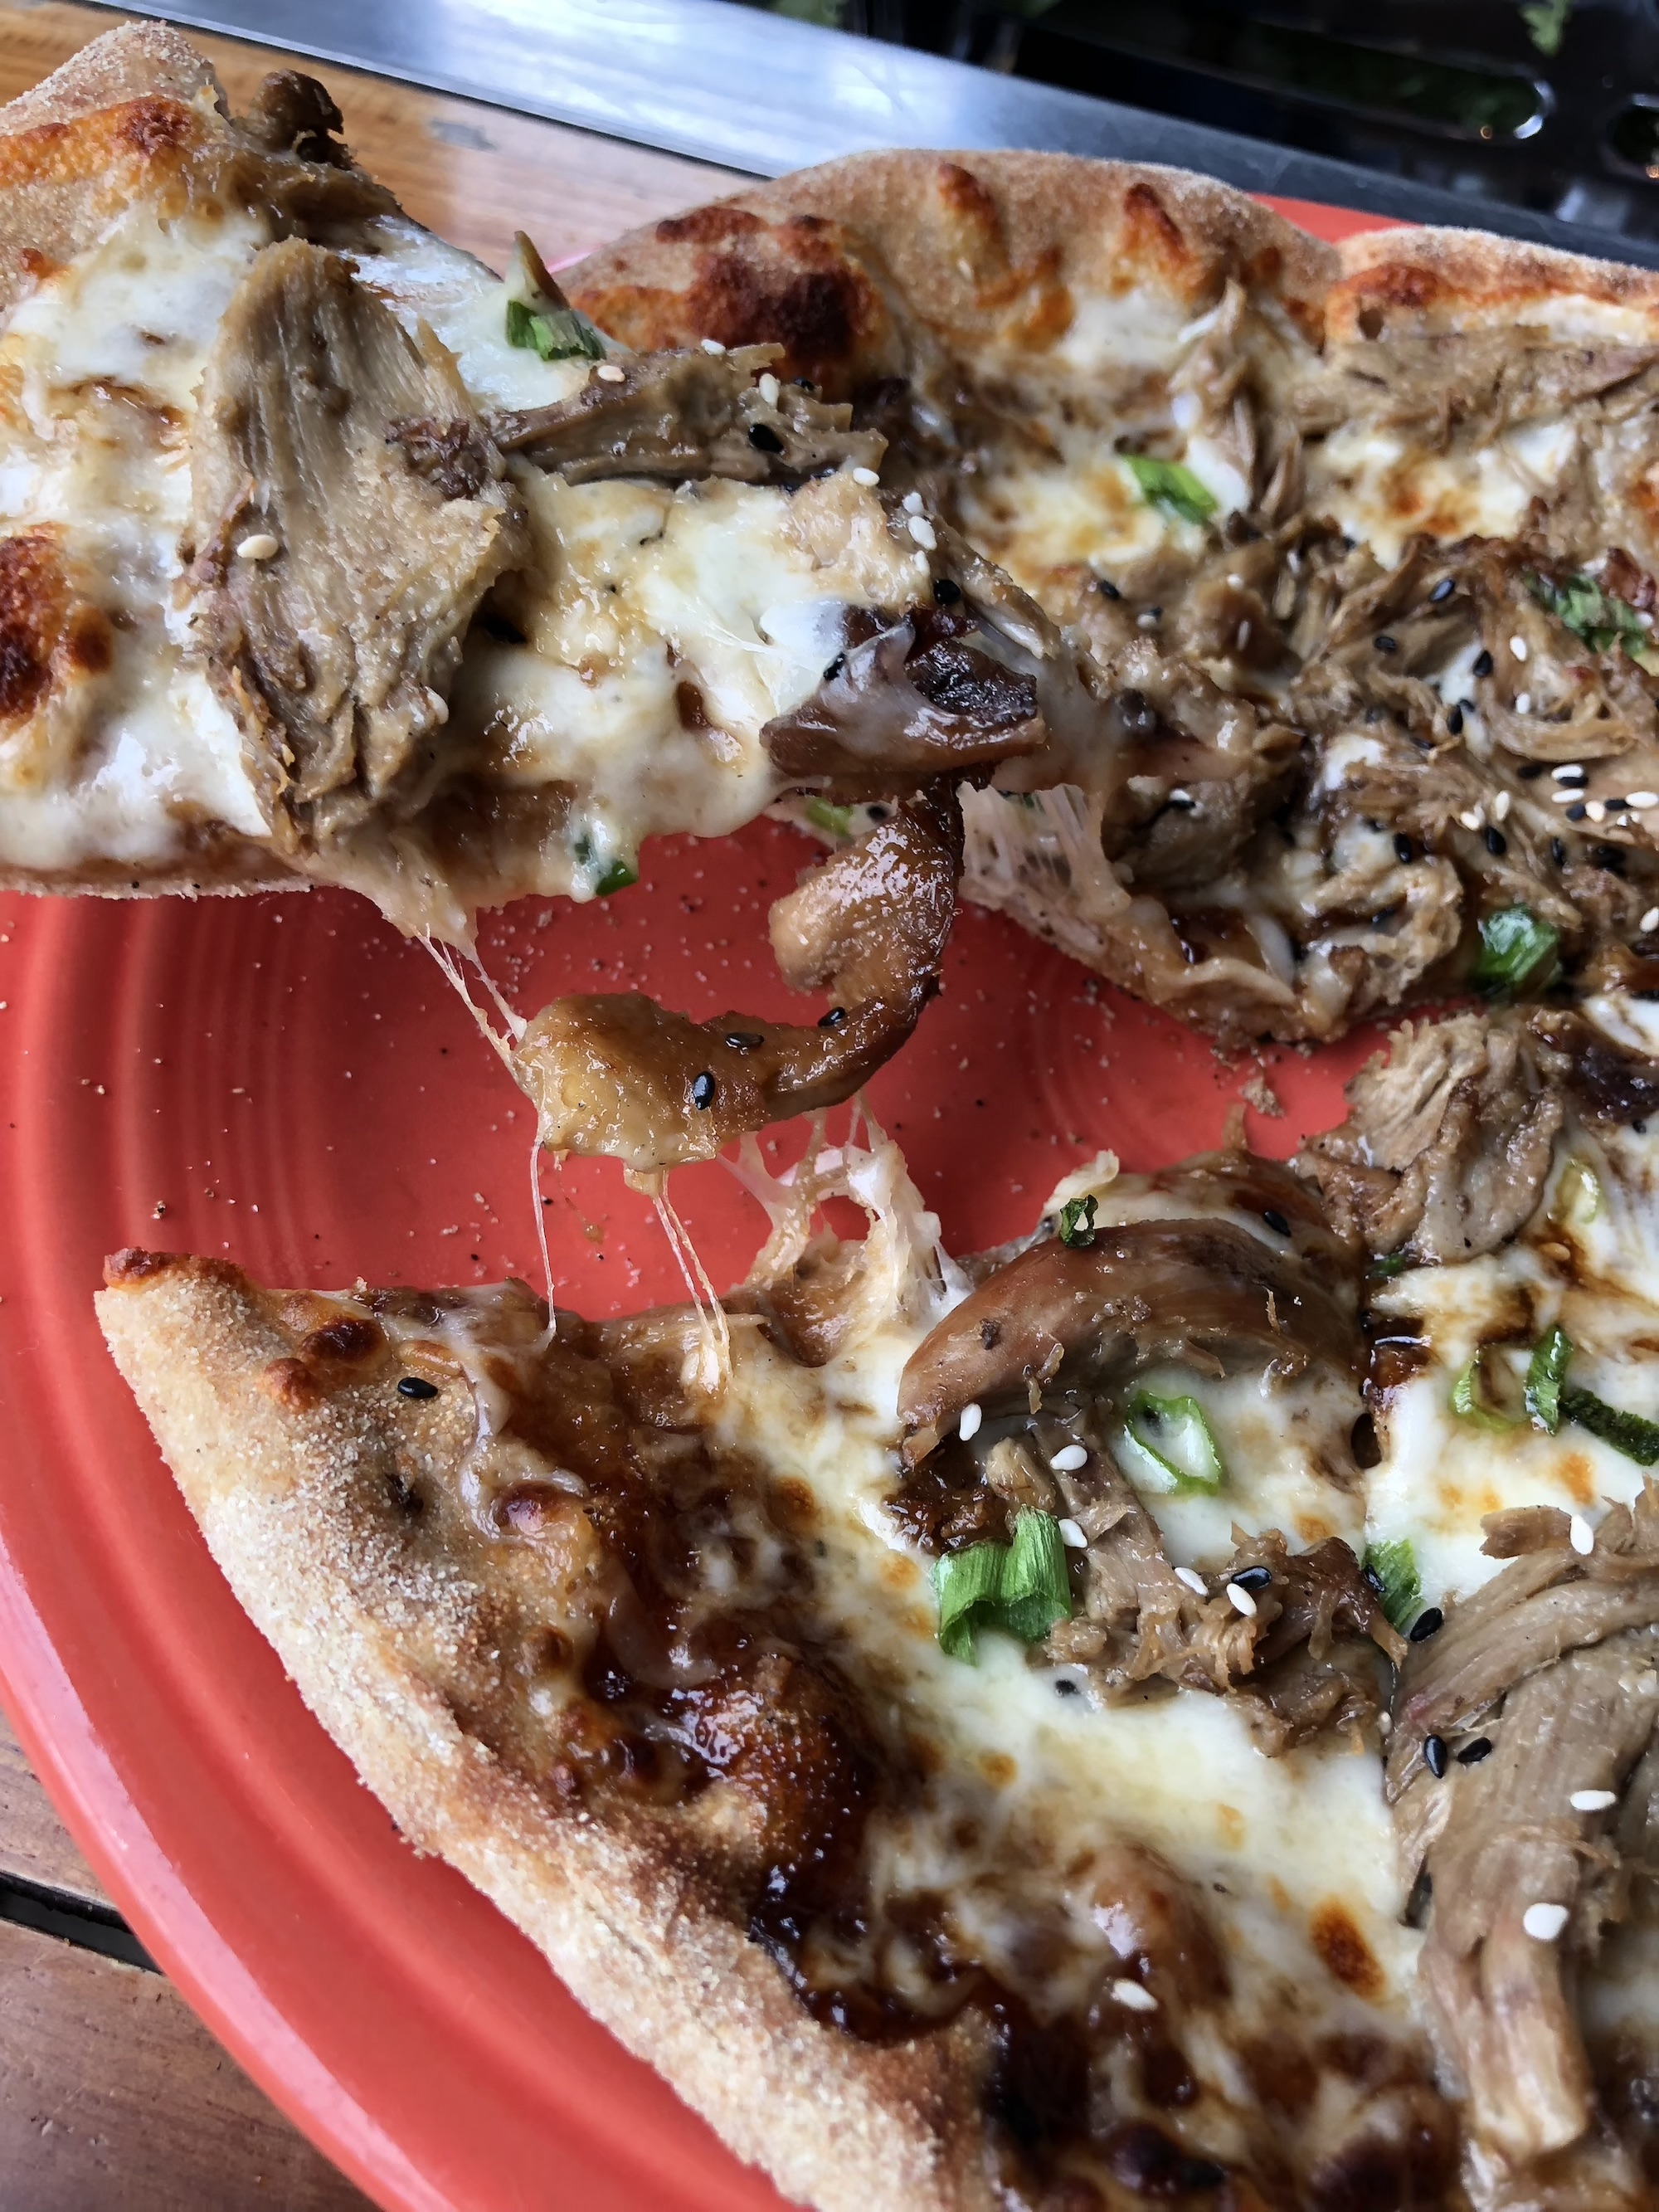 House smoked duck pizza